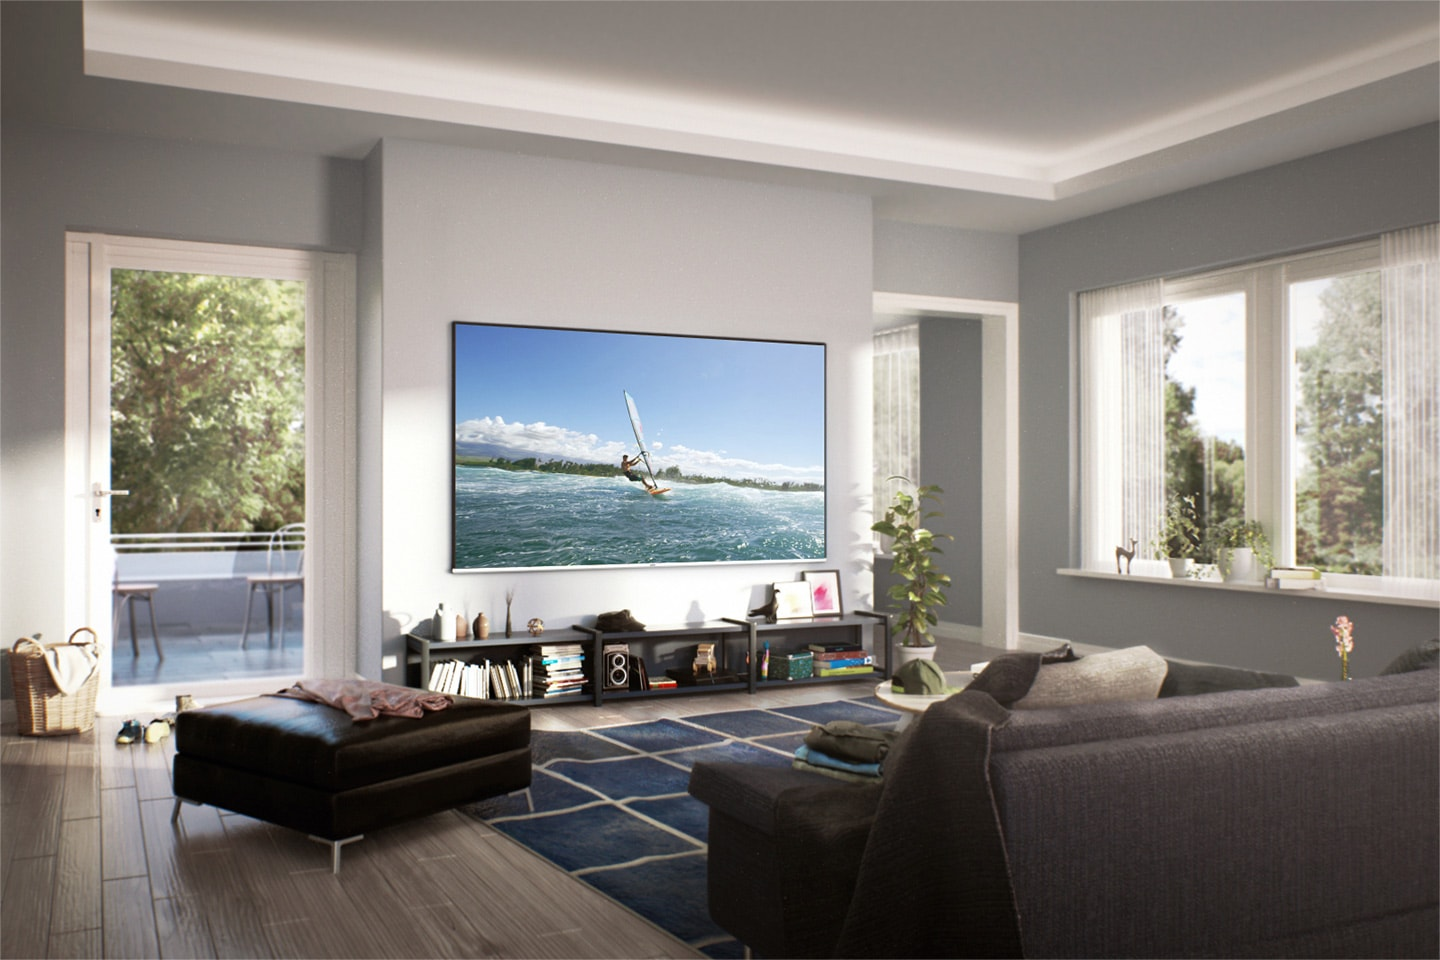 Wide view of cozy living room with daylight from out of the window. A Super Big TV is hung on the wall. On the screen, a man is enjoying surfing.